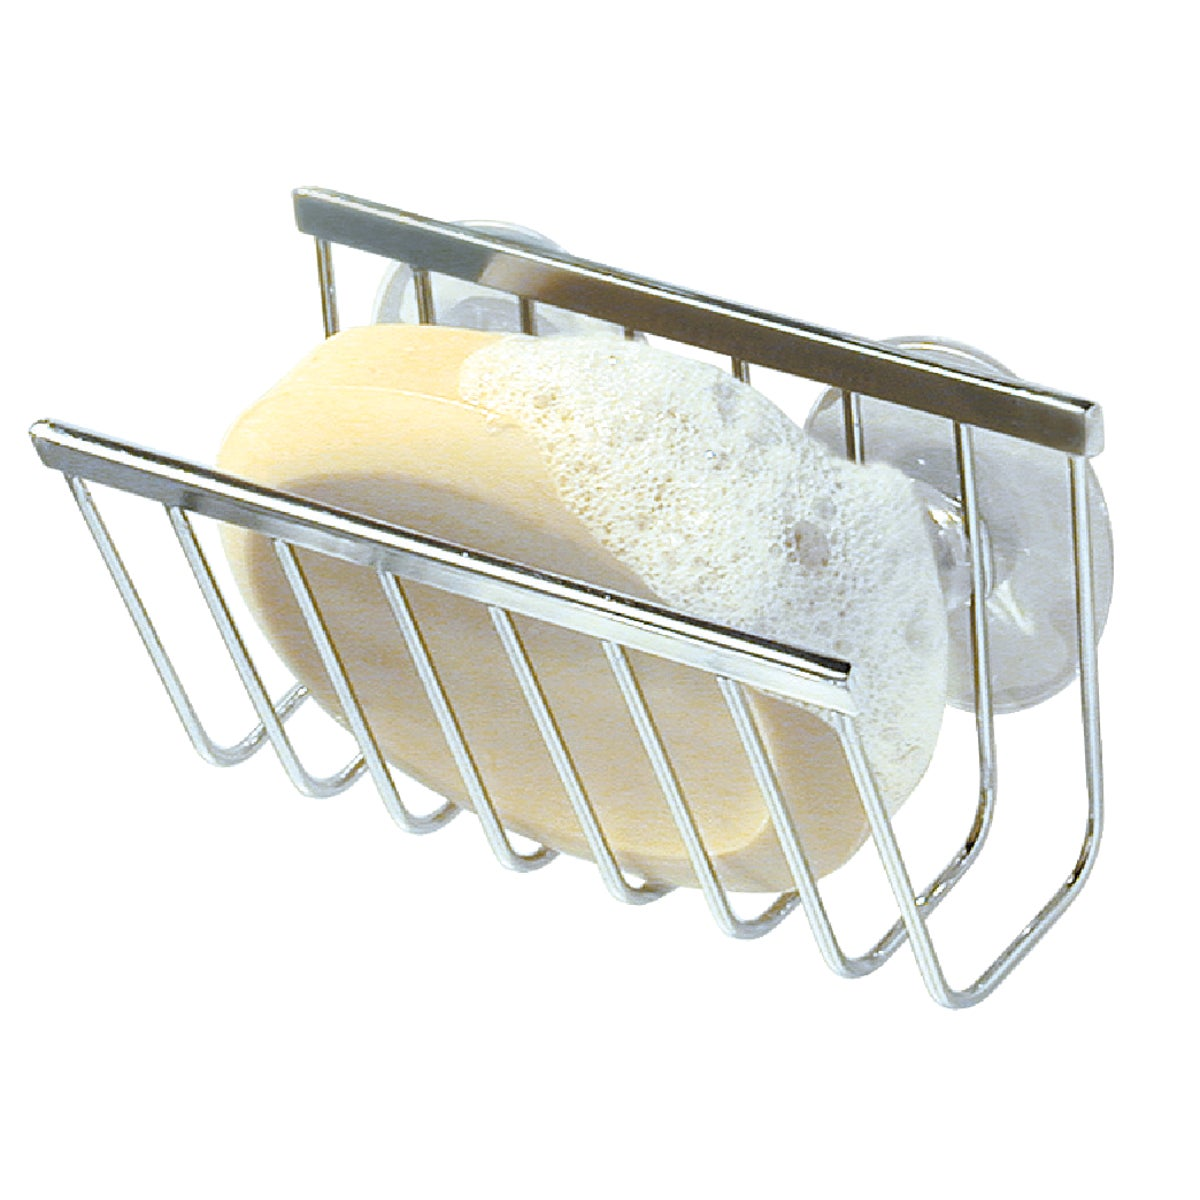 SOAP/SPONGE HOLDER - 84302 by Interdesign Inc